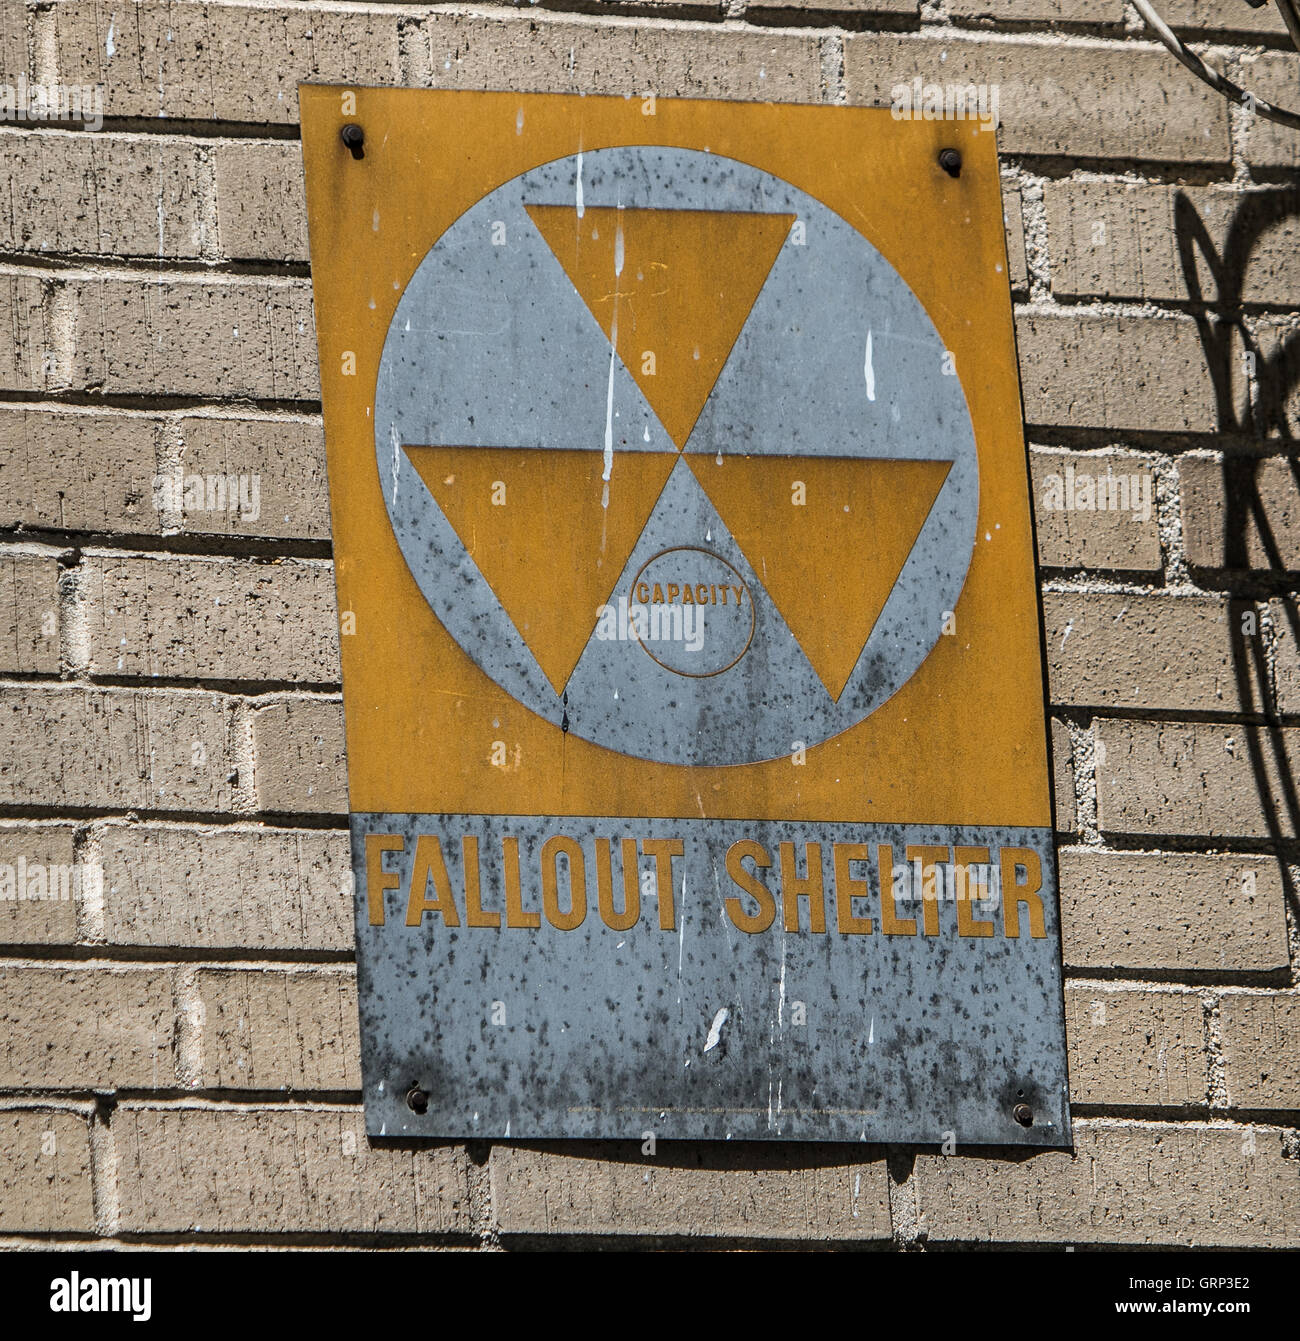 "A ""Fallout Shelter"" sign on a brick building wall. Stock Photo"